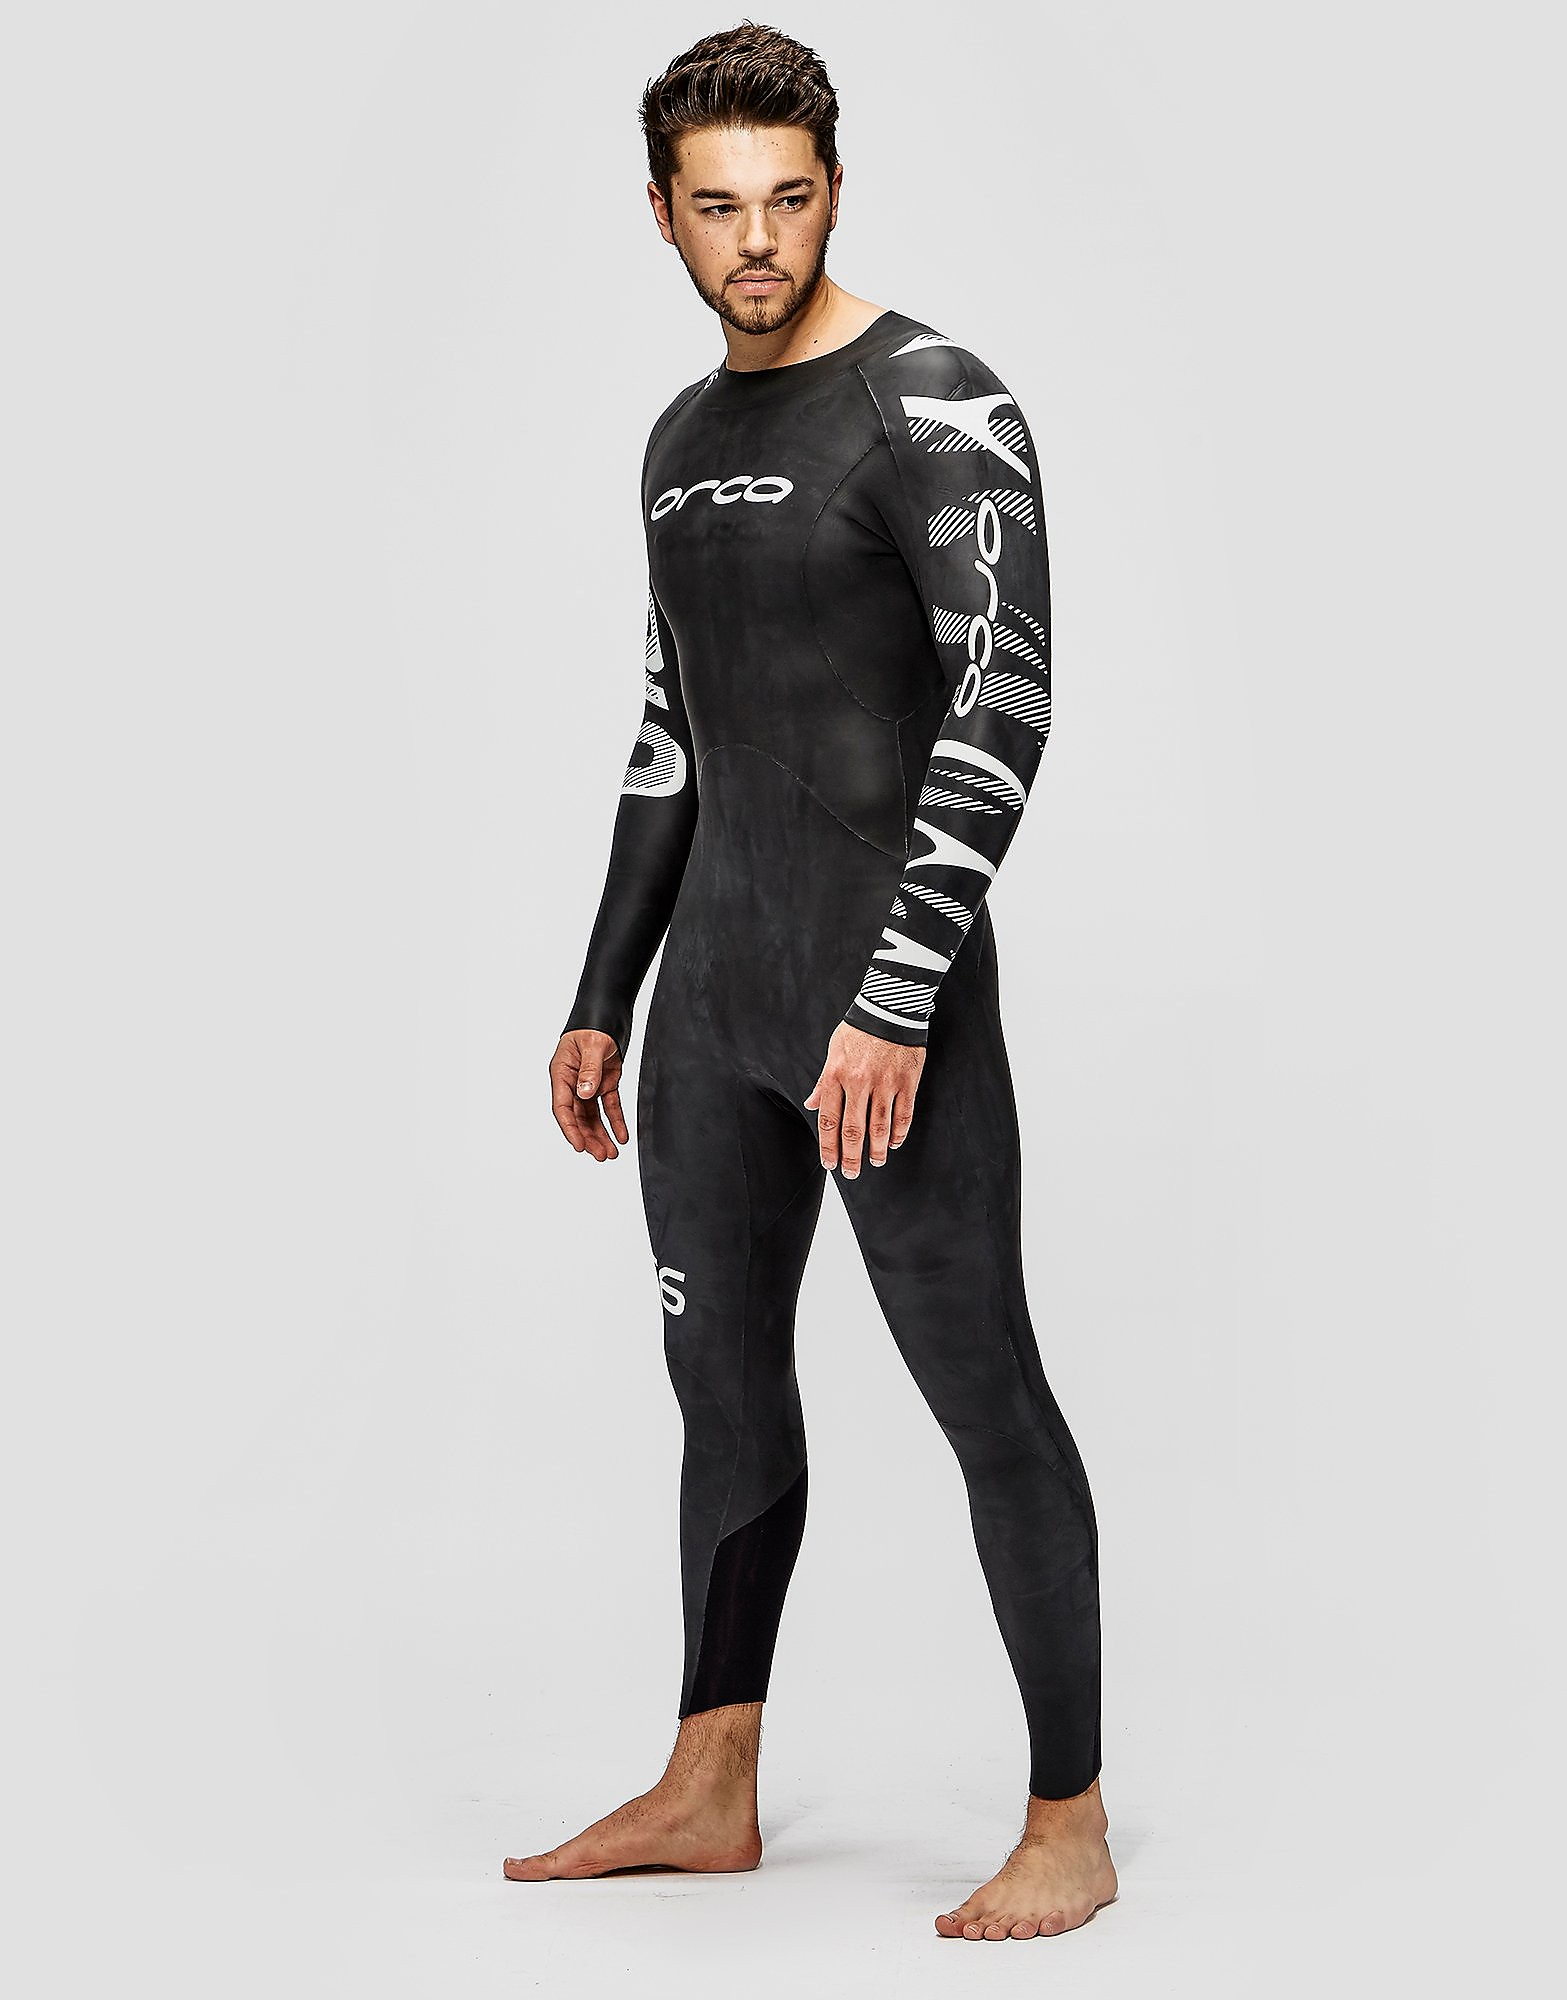 Orca S6 Men's Long Sleeve Wetsuit